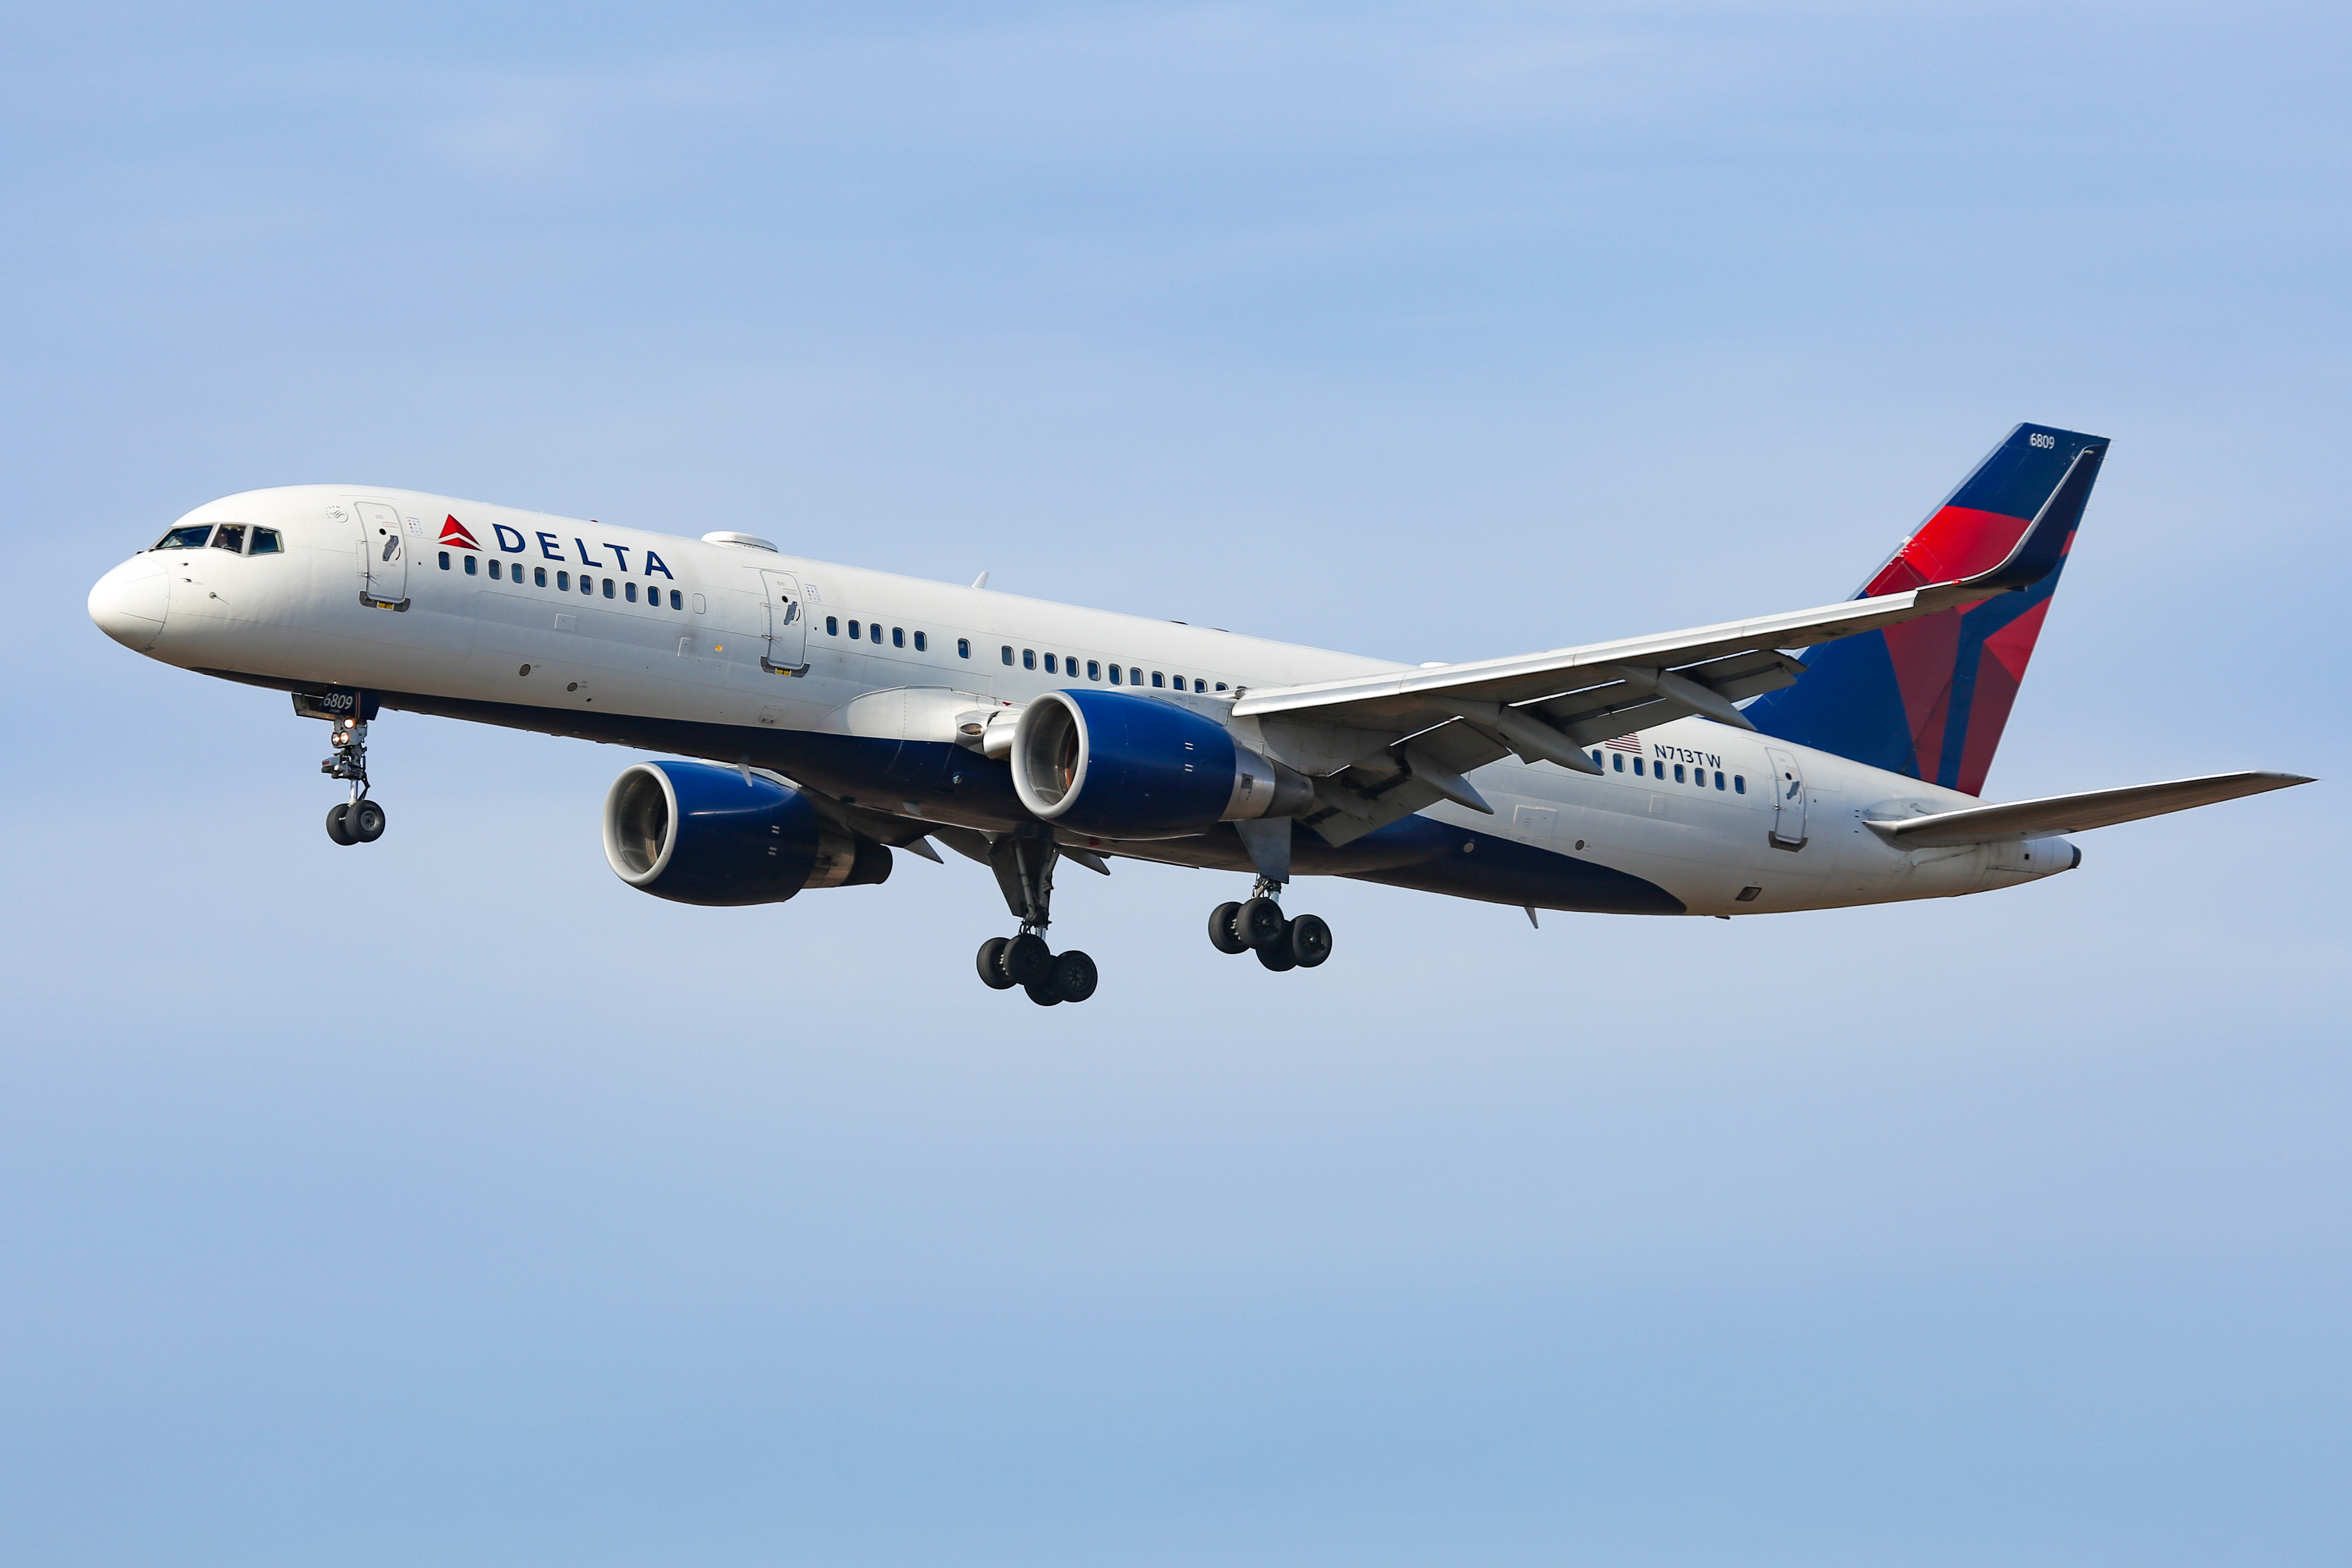 Delta AmEx Cards Are Now Offering Welcome Bonuses Up to 90,000 SkyMiles